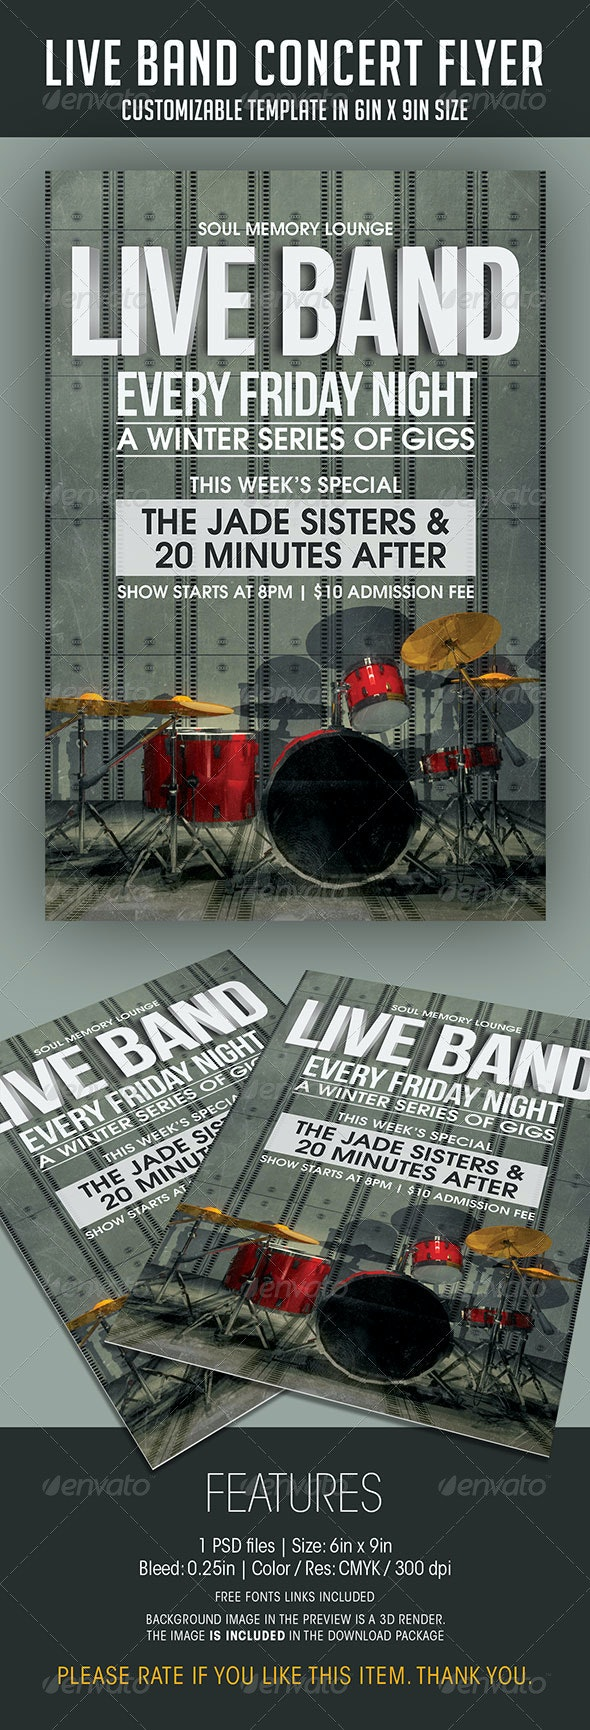 Live Band Gigs Flyer - Concerts Events